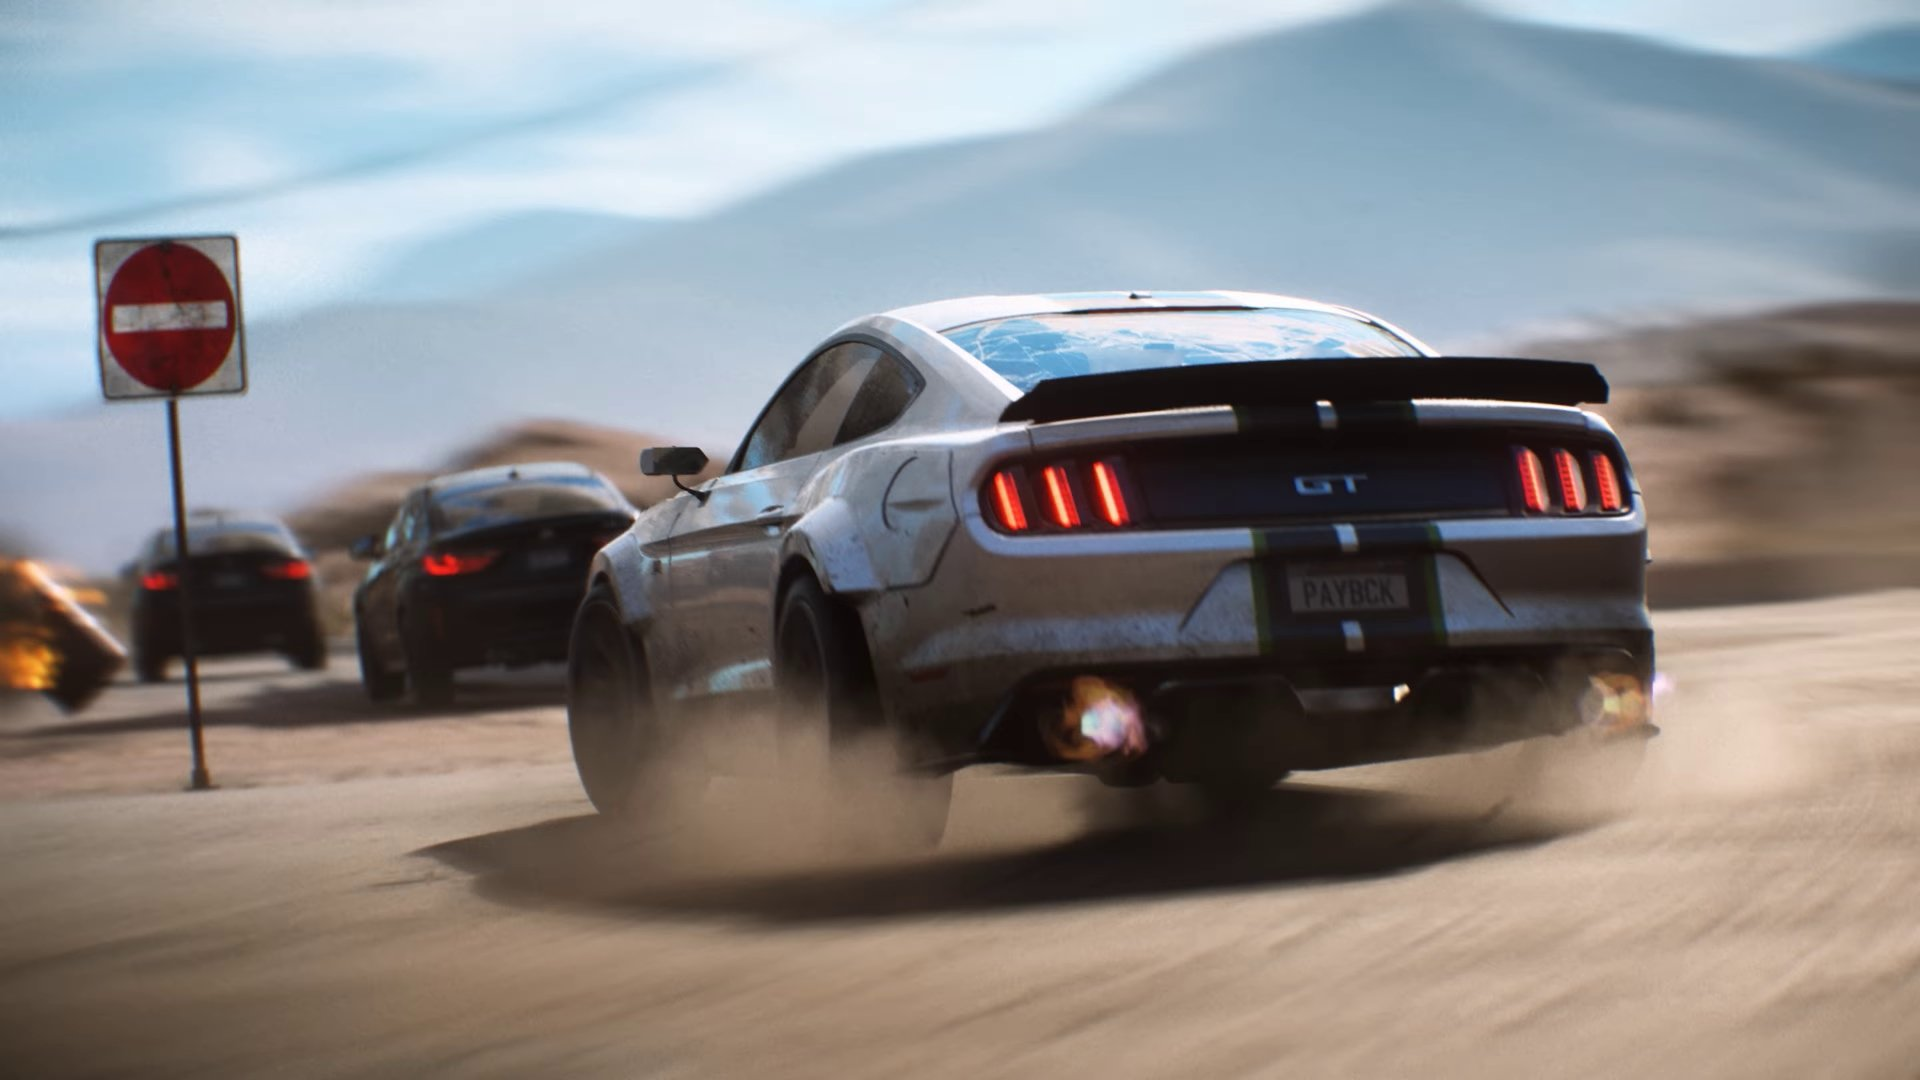 Free Download 1920x1080px Nfs Payback Wallpapers 1920x1080 For